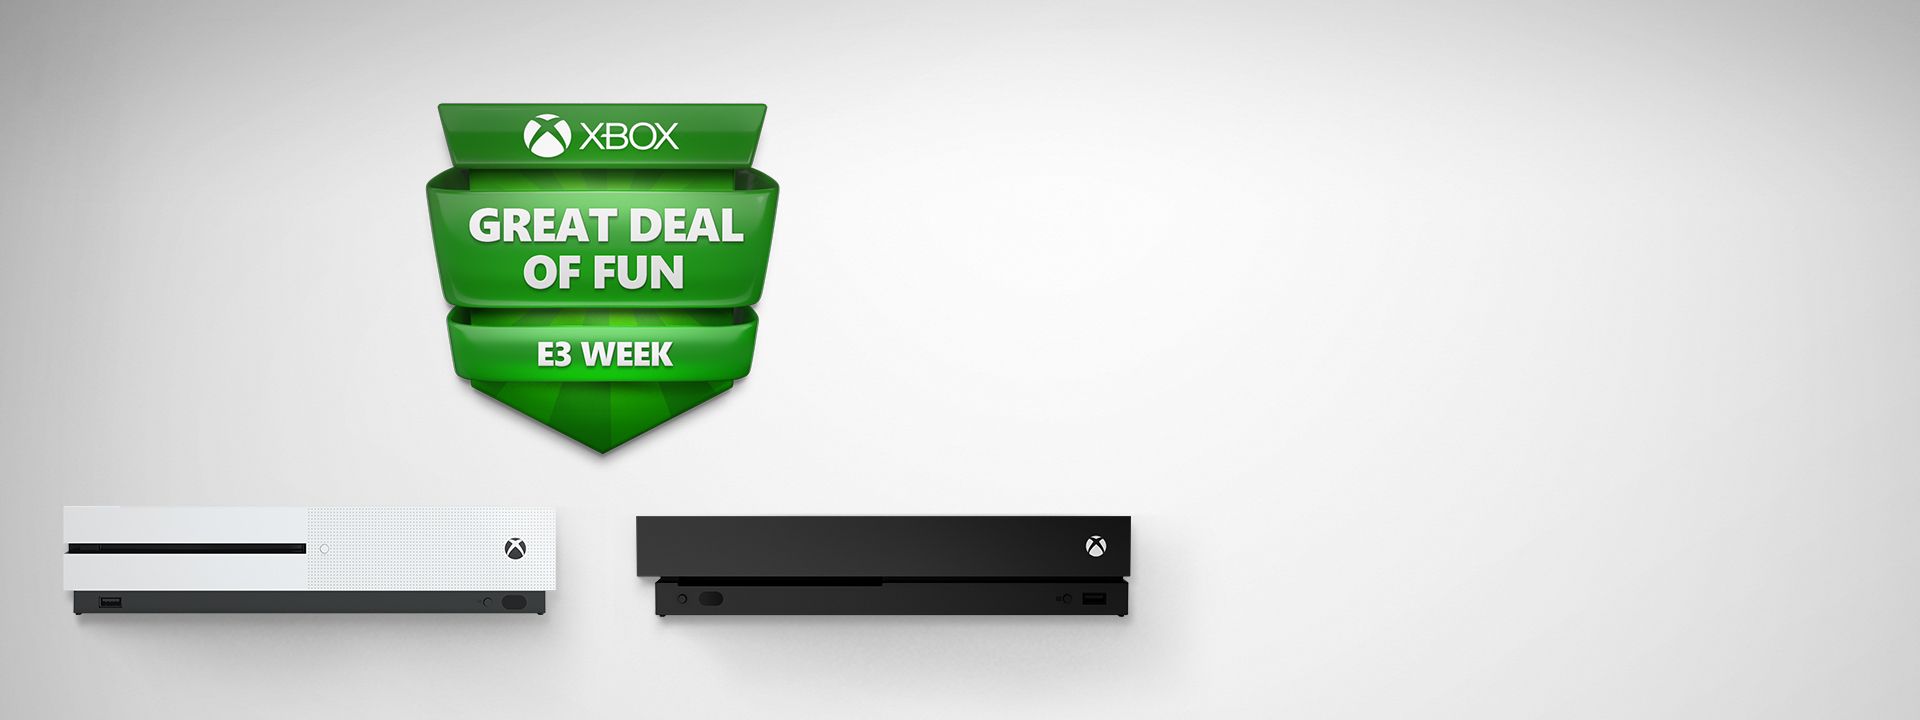 Xbox One S and Xbox One X with Big Fun Deal logo